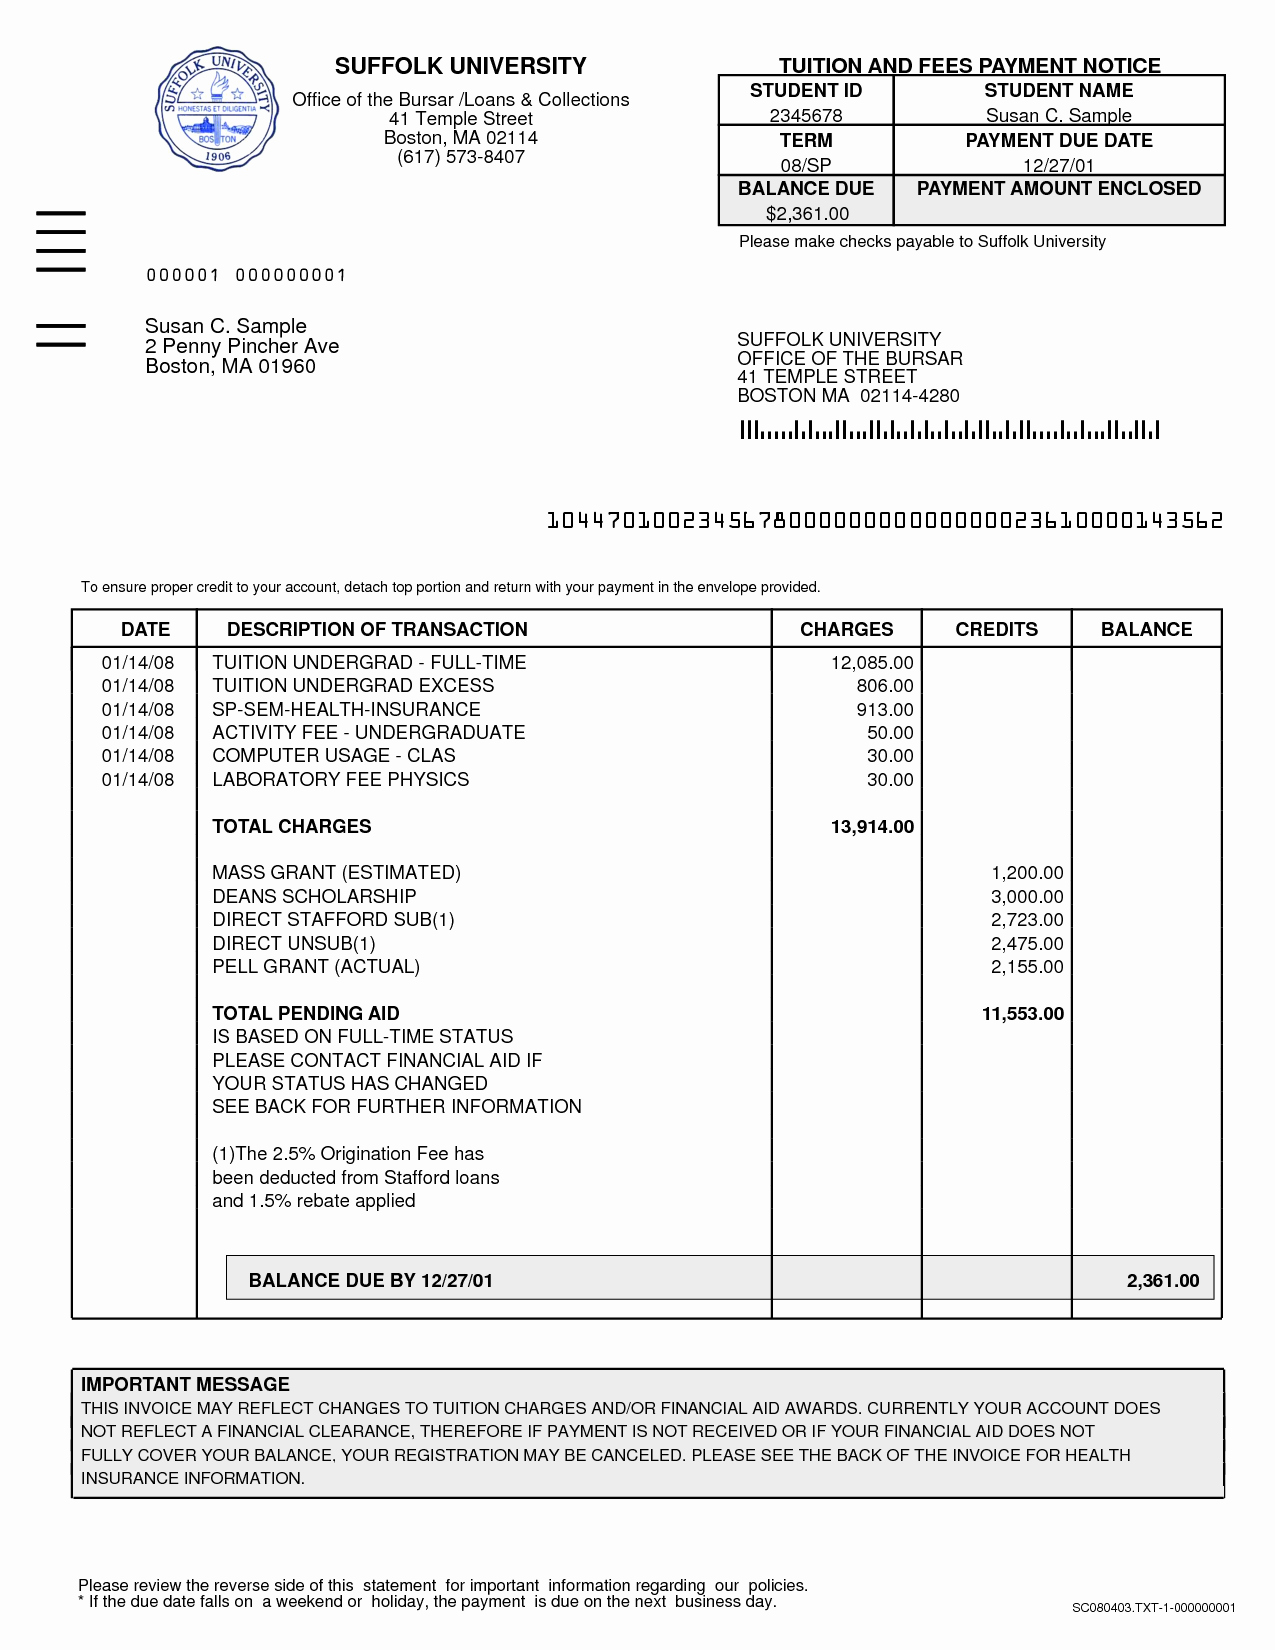 Legal Receipt Template Beautiful Inviceswanndvrnet Personable Invoice Template Printable